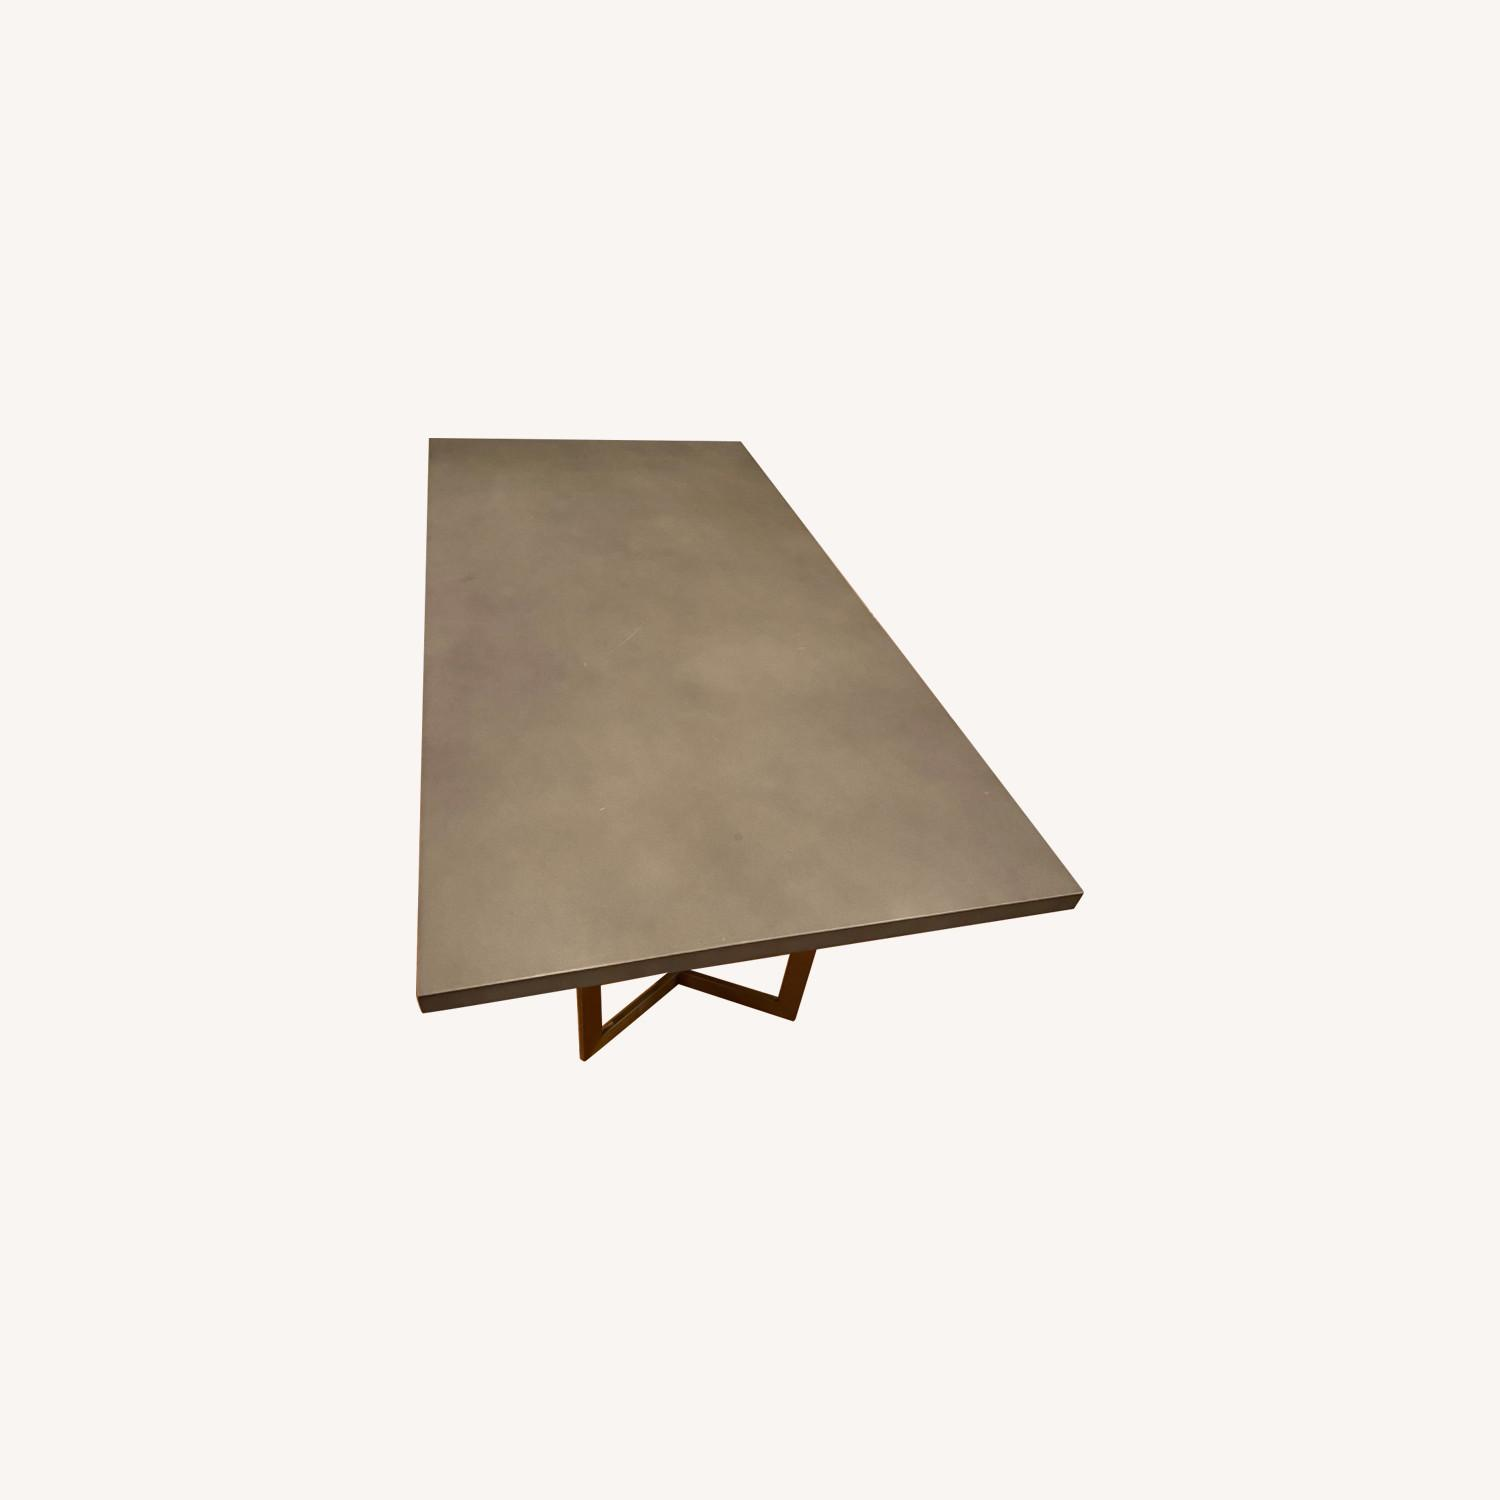 West Elm Tower Dining Table Concrete - image-0